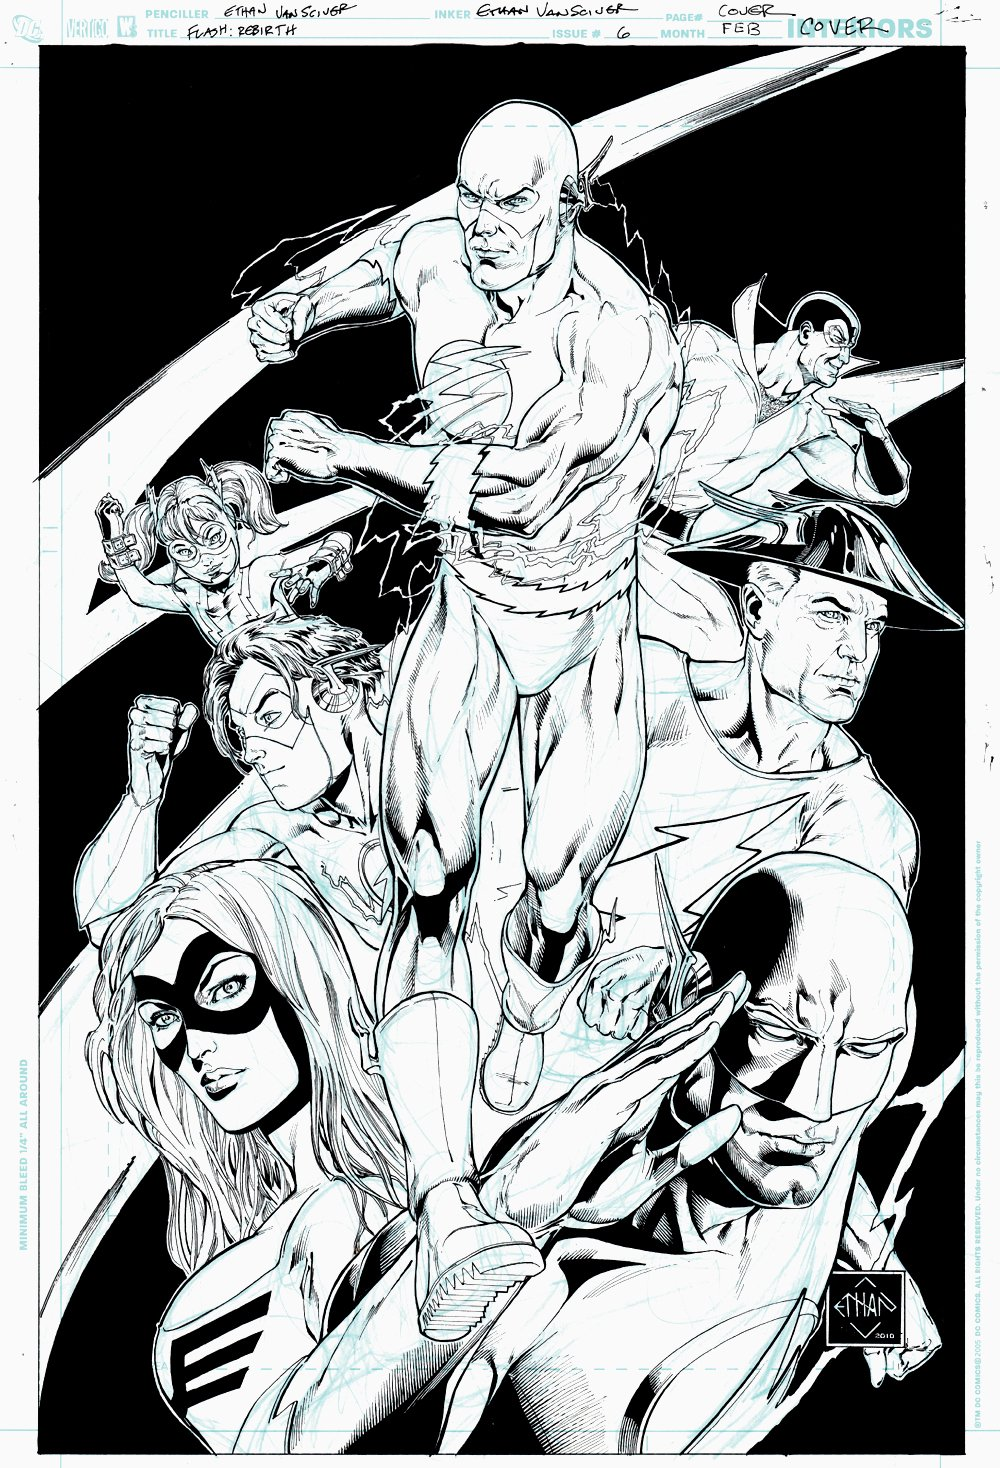 The Flash: Rebirth #6 (Awesome Flash Family Cover, 7 Heroes!) 2010